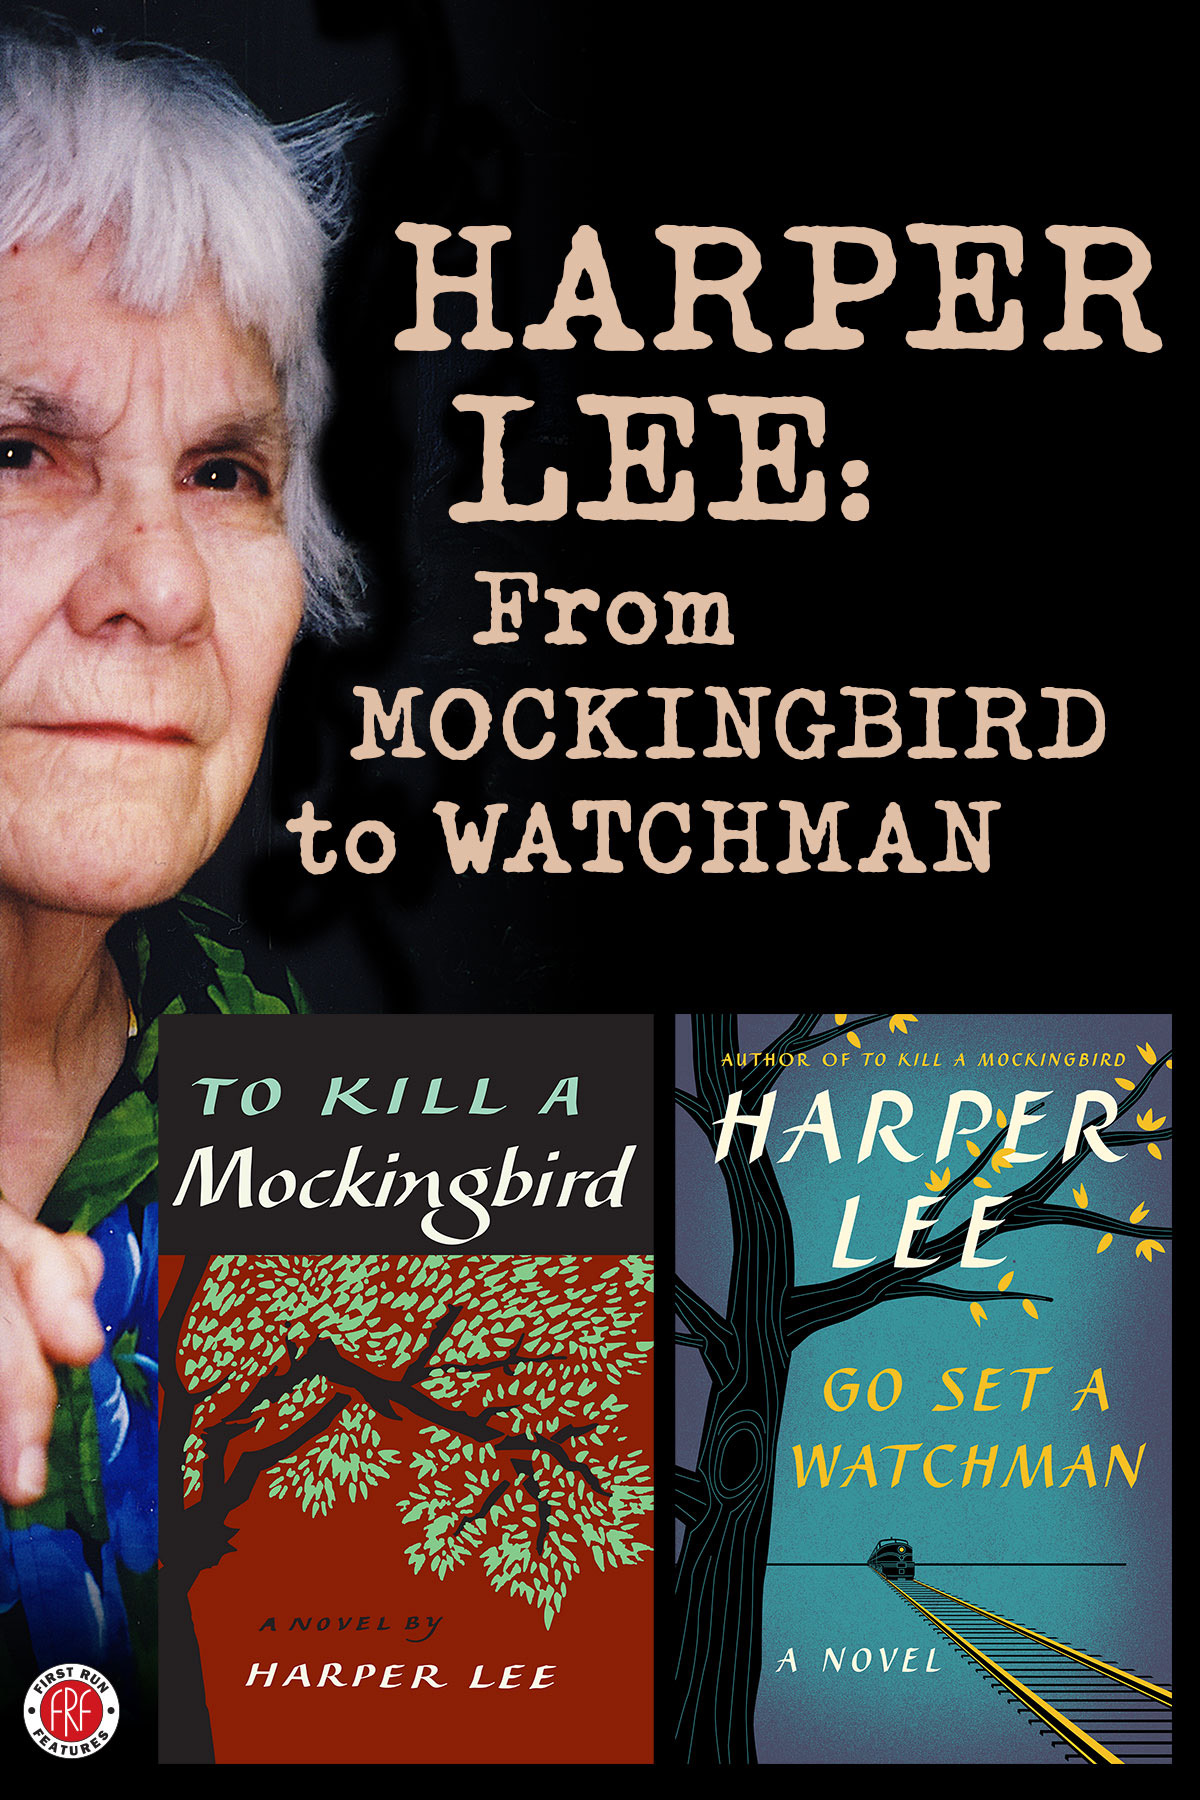 how harper lee reveals the theme Today, as harper lee's much-anticipated second novel go set a watchman is  released, we gathered some interesting facts from the life story.